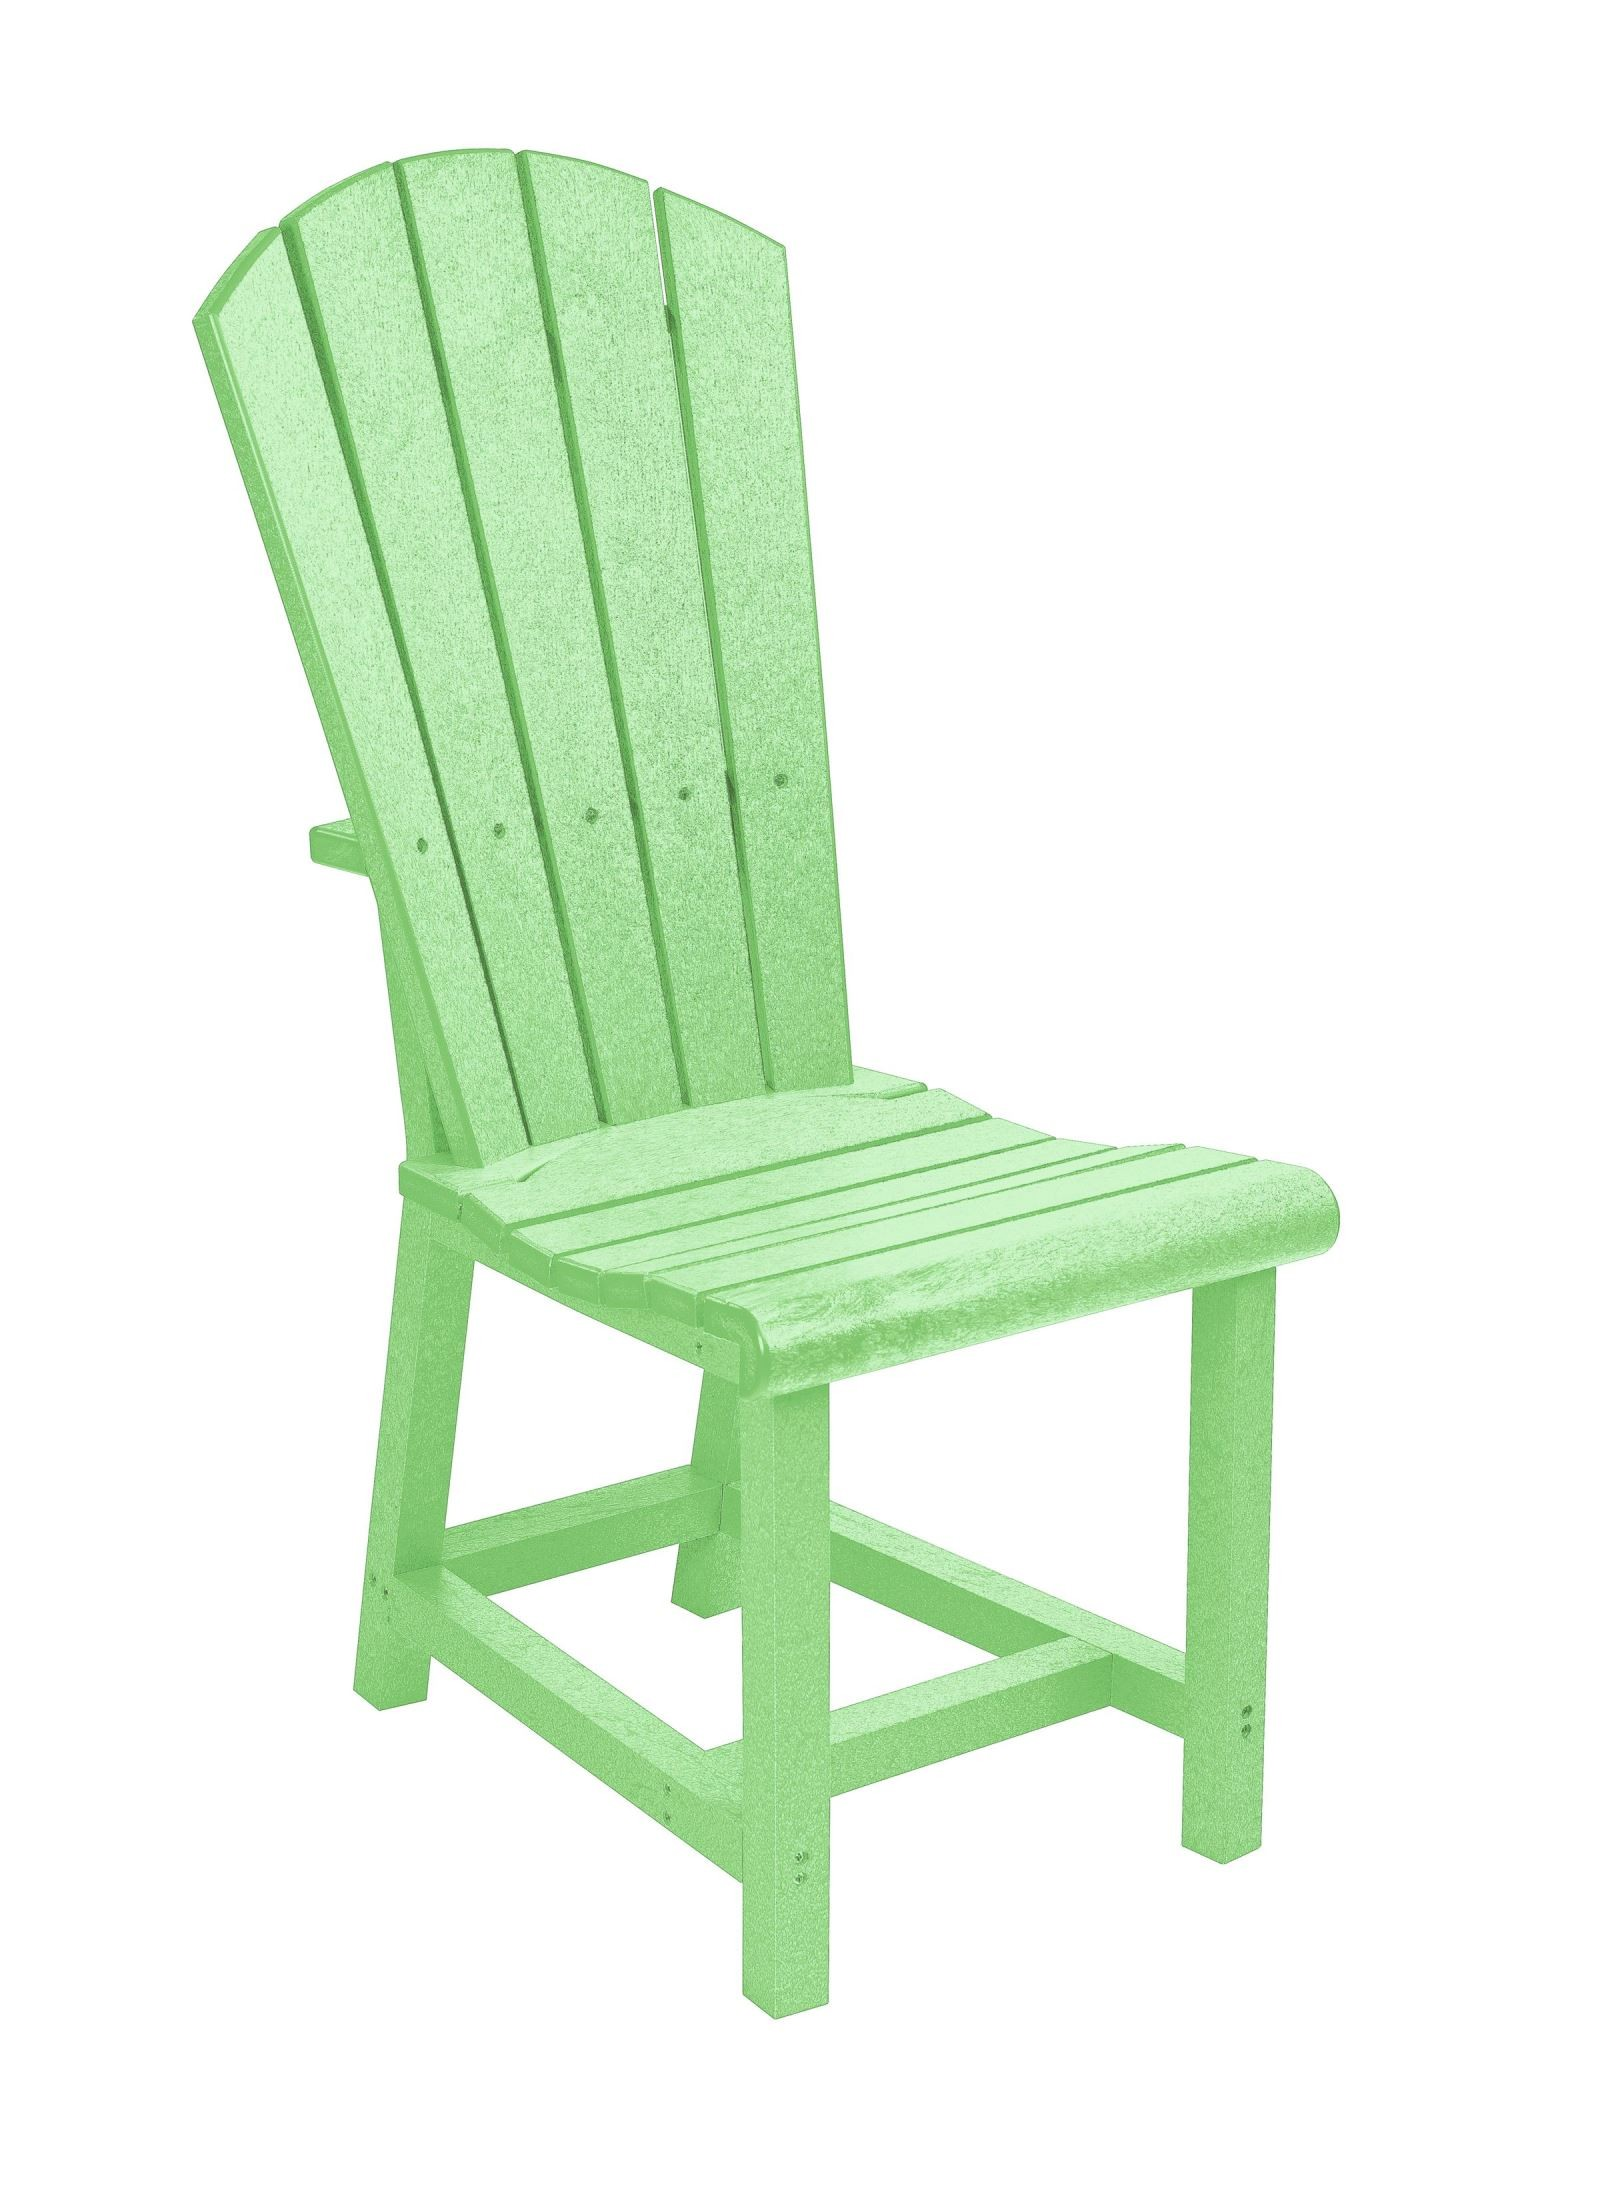 Lime Green Chair Generations Lime Green Adirondack Dining Side Chair From